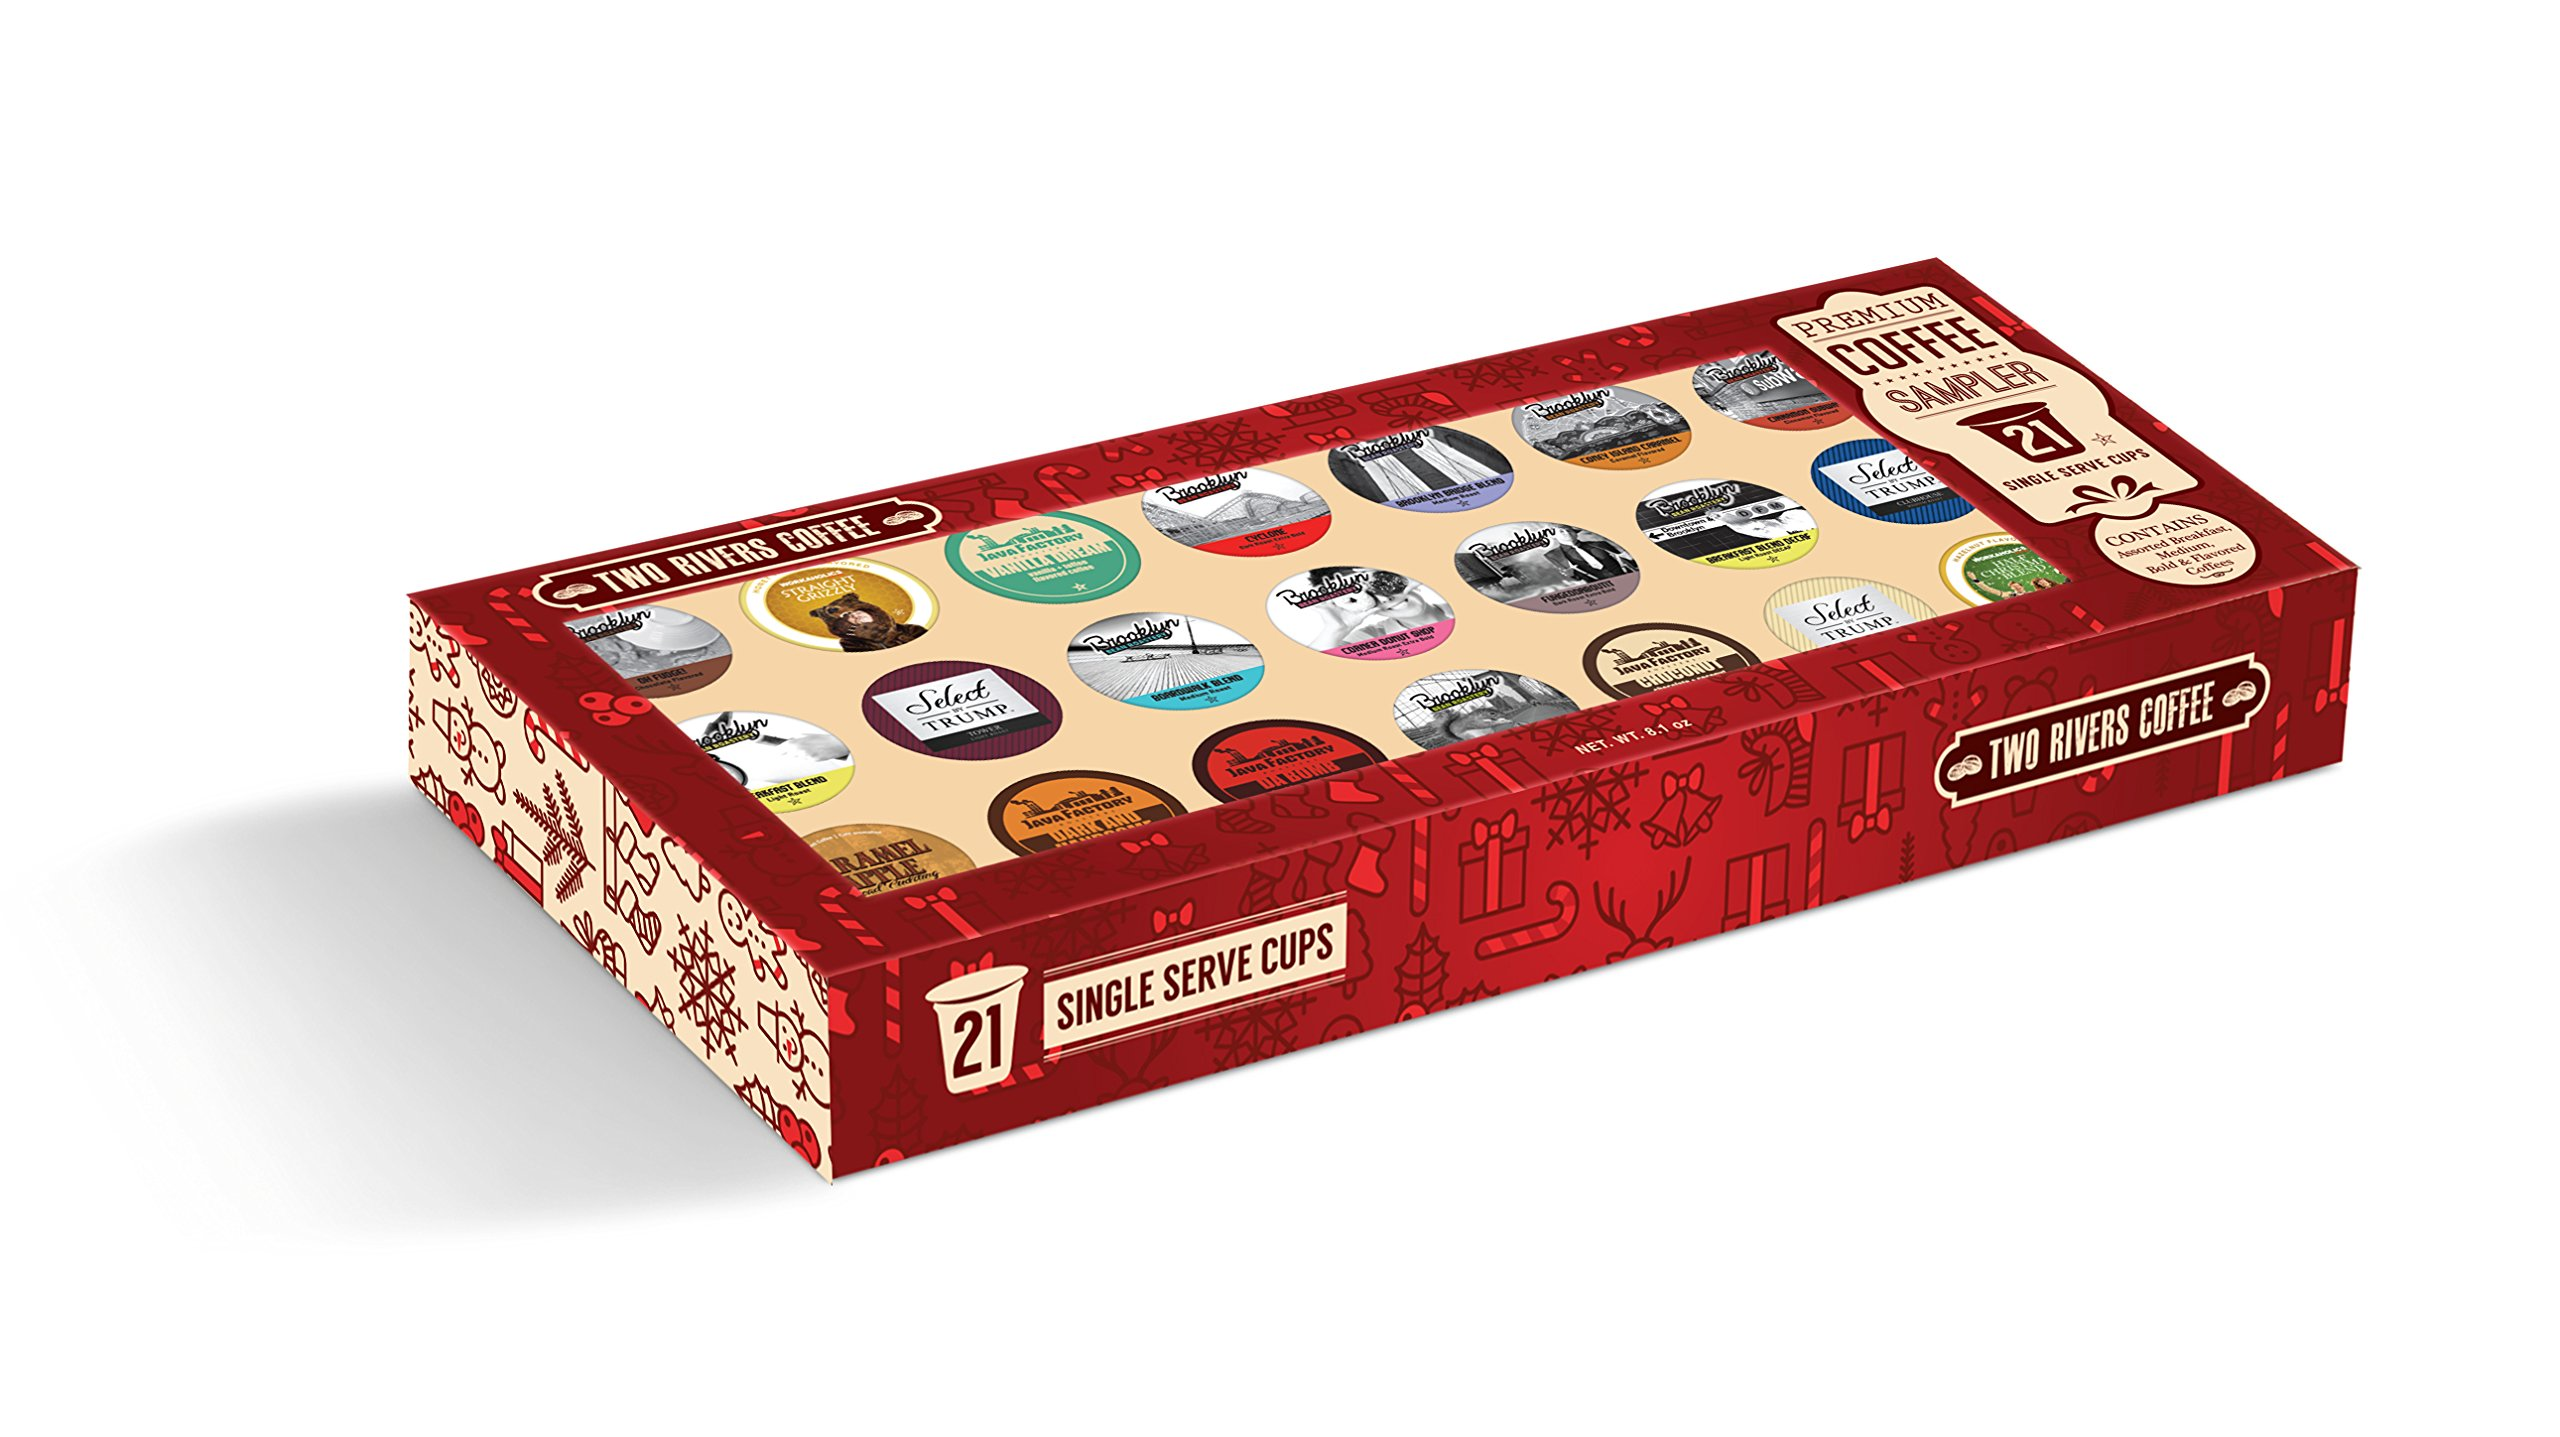 TRC Premium Coffee Only Single Serve Gift Box for Keurig K-Cup Brewers, 21 Count